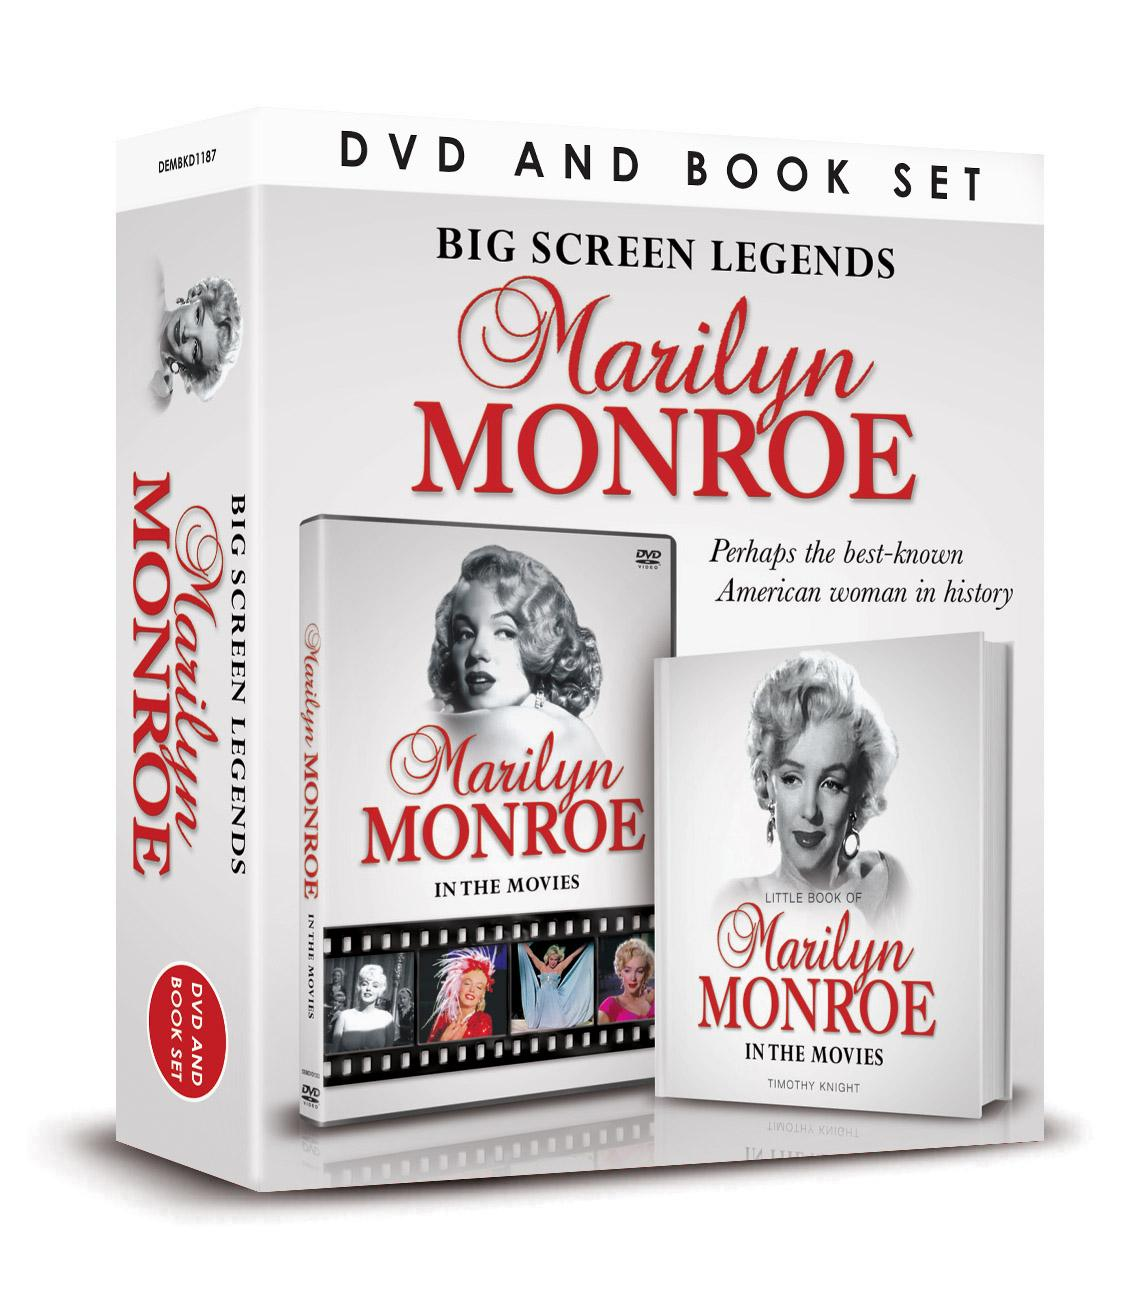 Marilyn Monroe DVD and Book Set